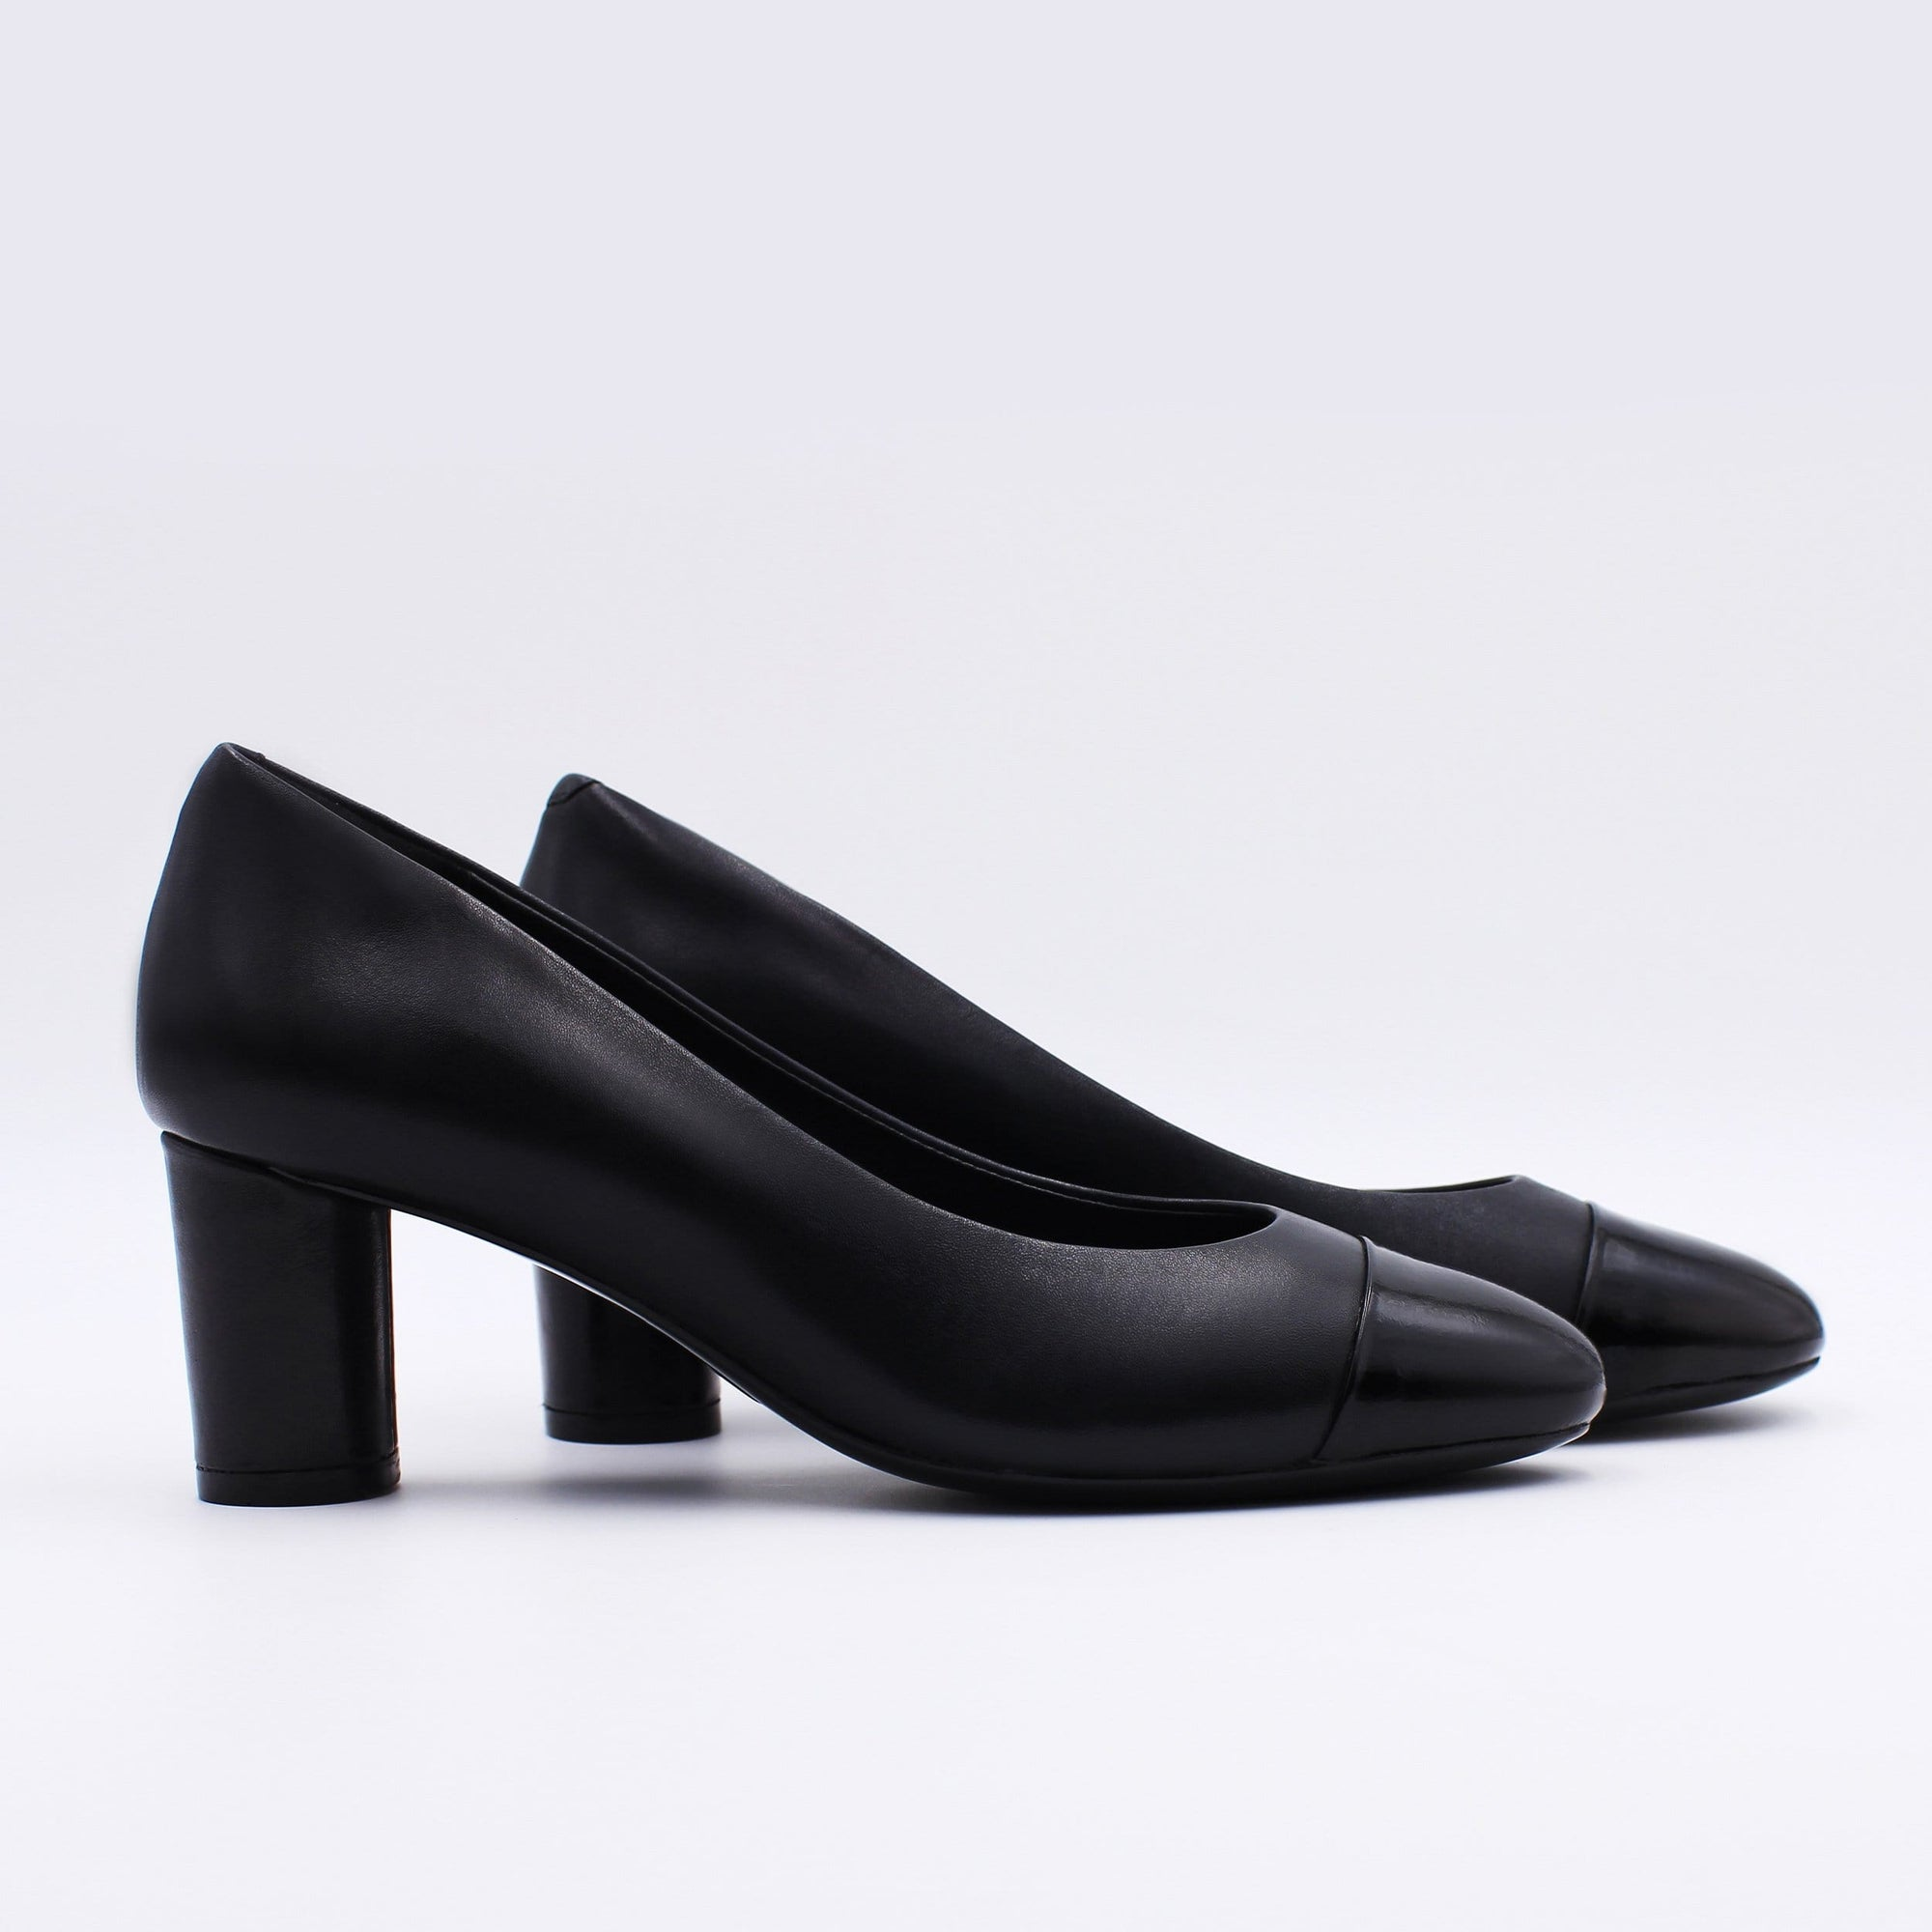 HOPE ROSA Pumps KARLA BLACK/BLACK PATENT